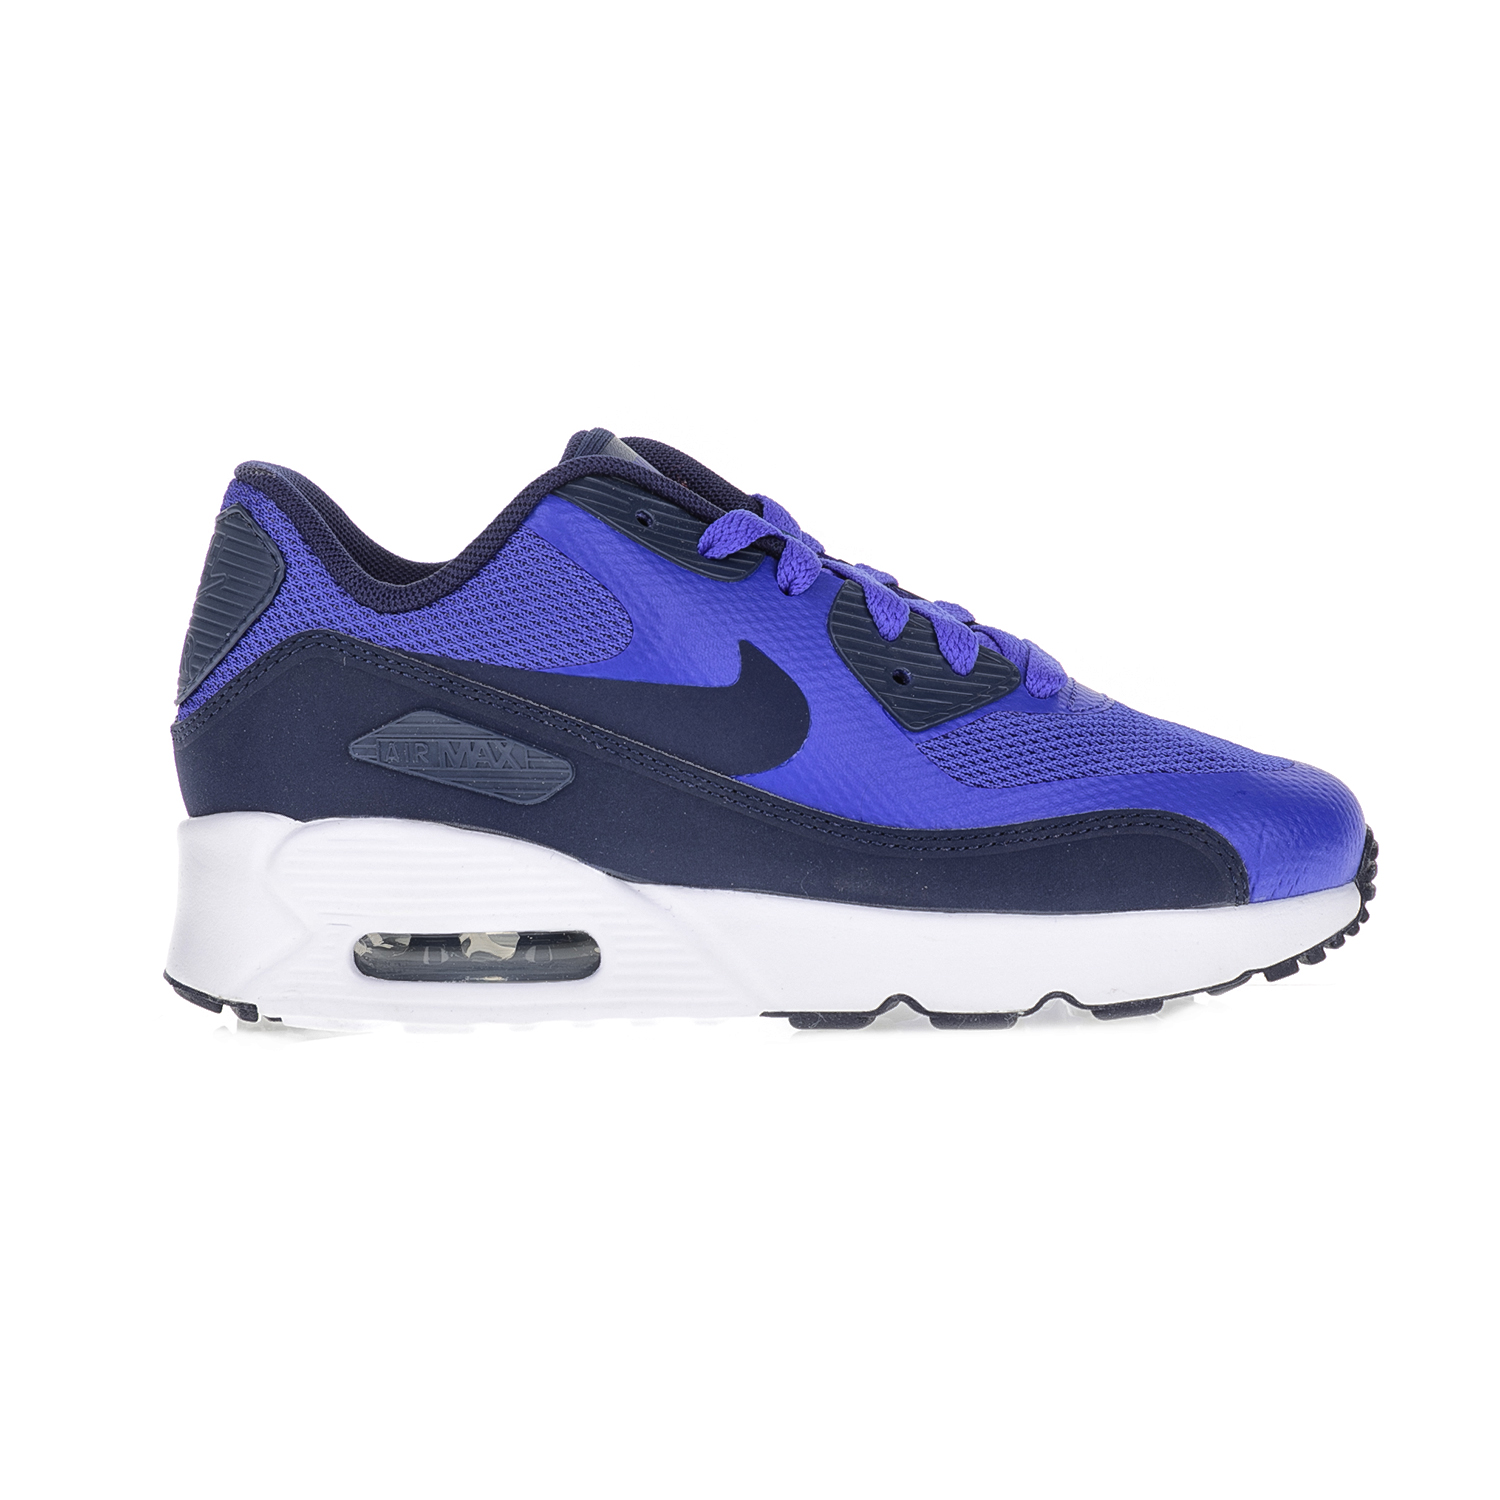 NIKE – Παιδικά αθλητικά παπούτσια AIR MAX 90 ULTRA 2.0 (PS) μπλε.  Factoryoutlet 898901bffe0